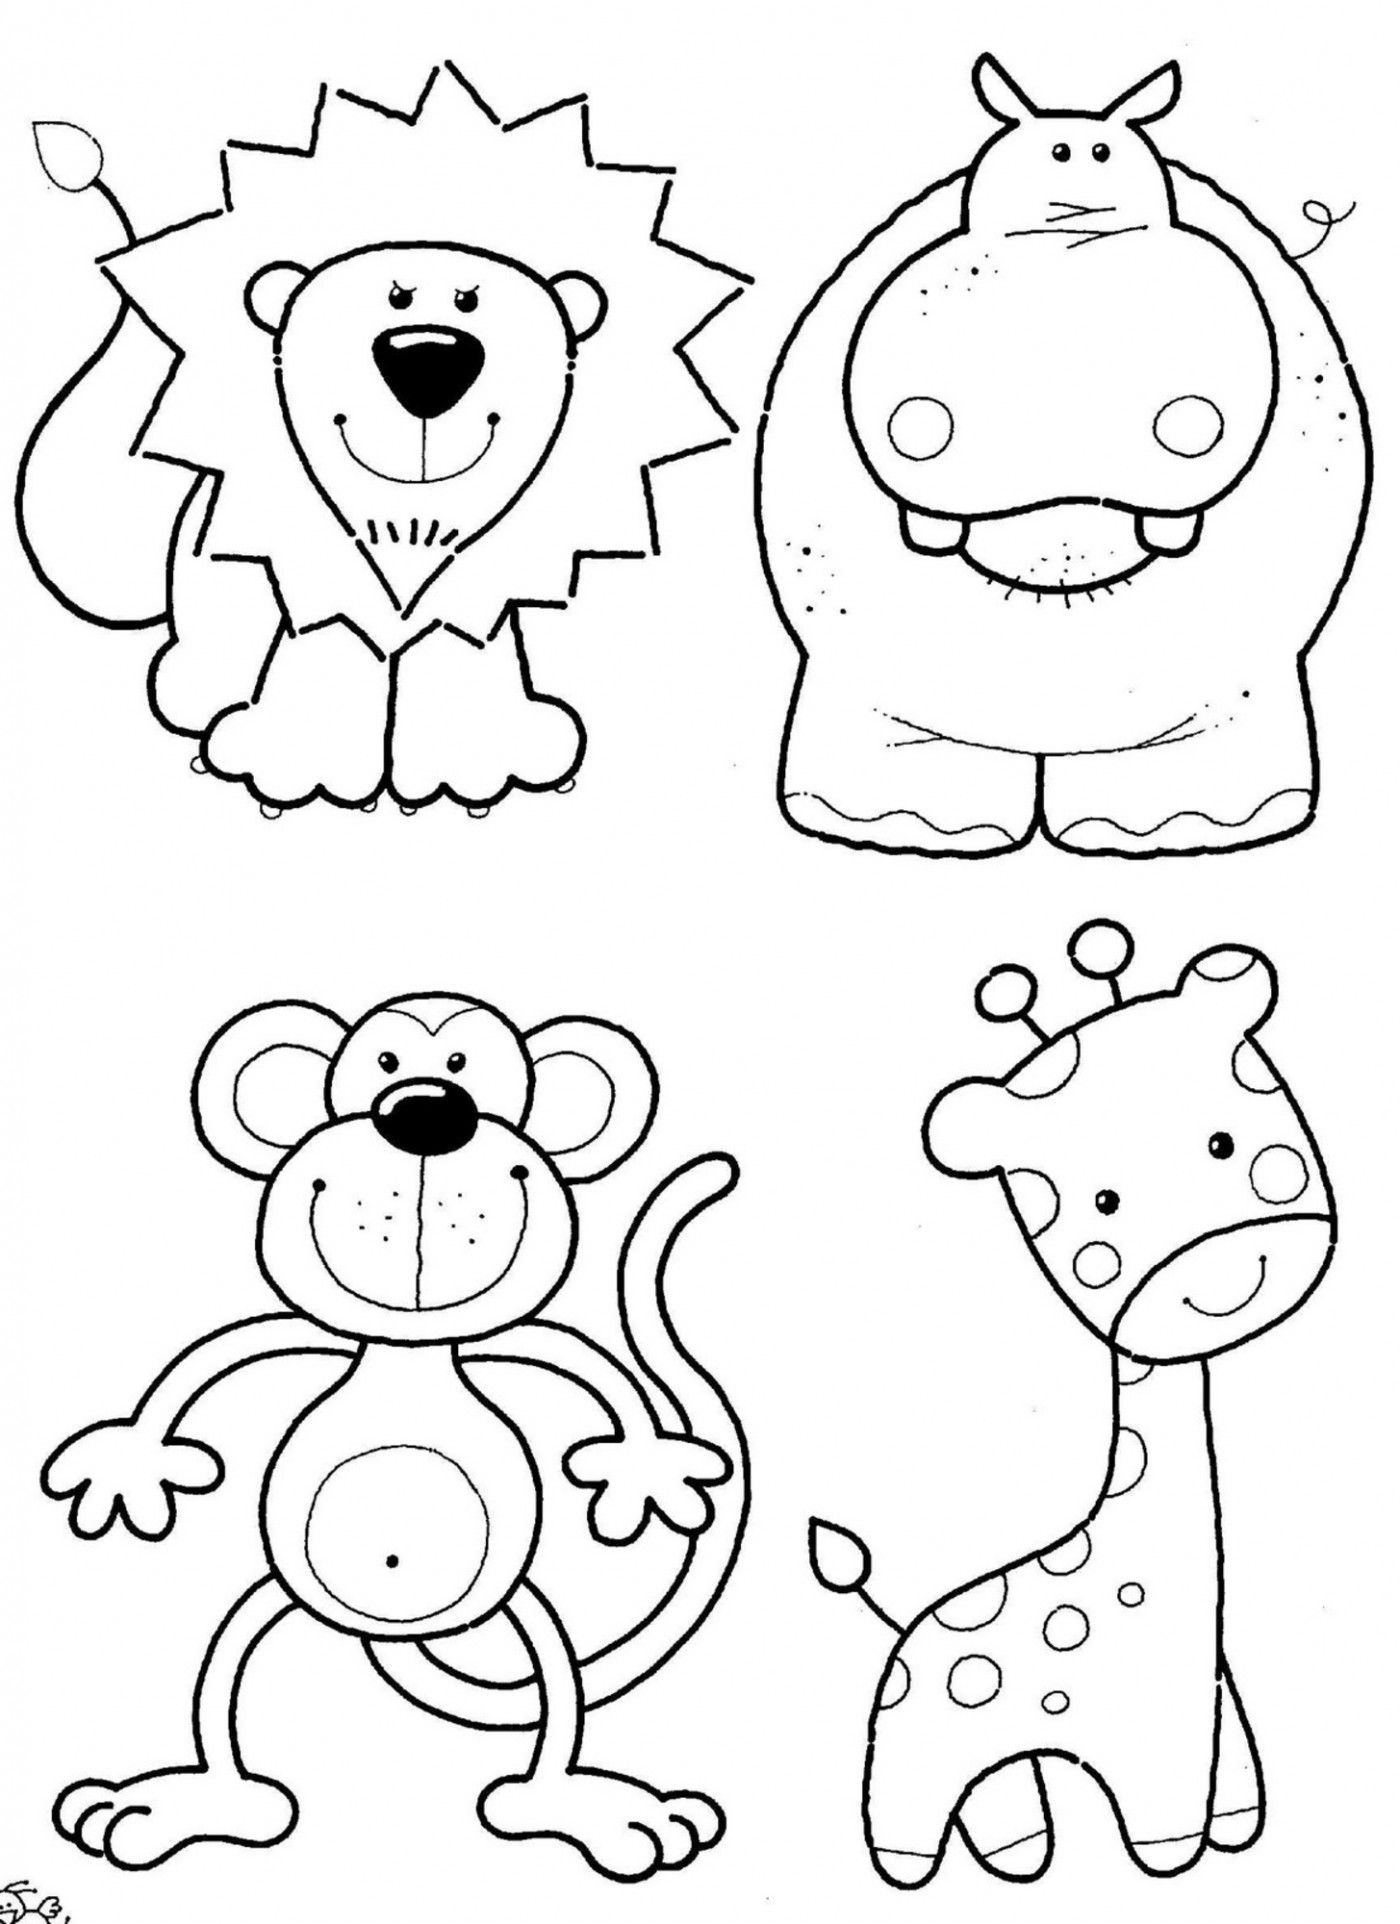 Animal Coloring Pages (10) - Coloring Kids  Zoo animal coloring